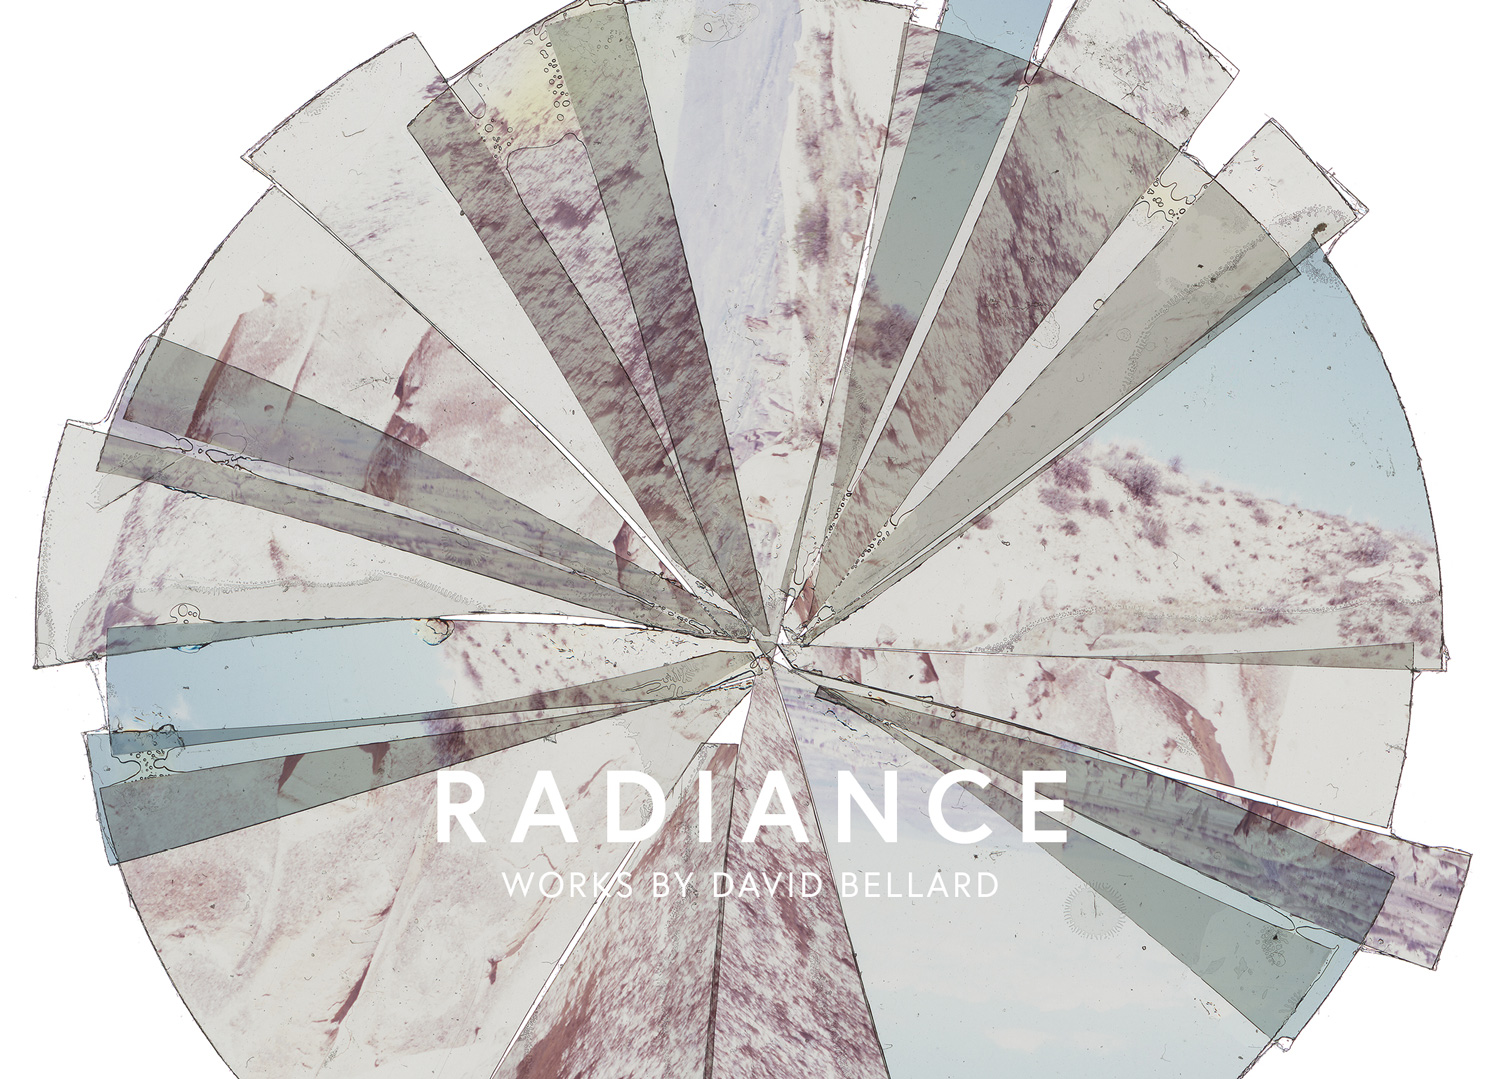 Radiance-sales-book-Oct-2018.jpg